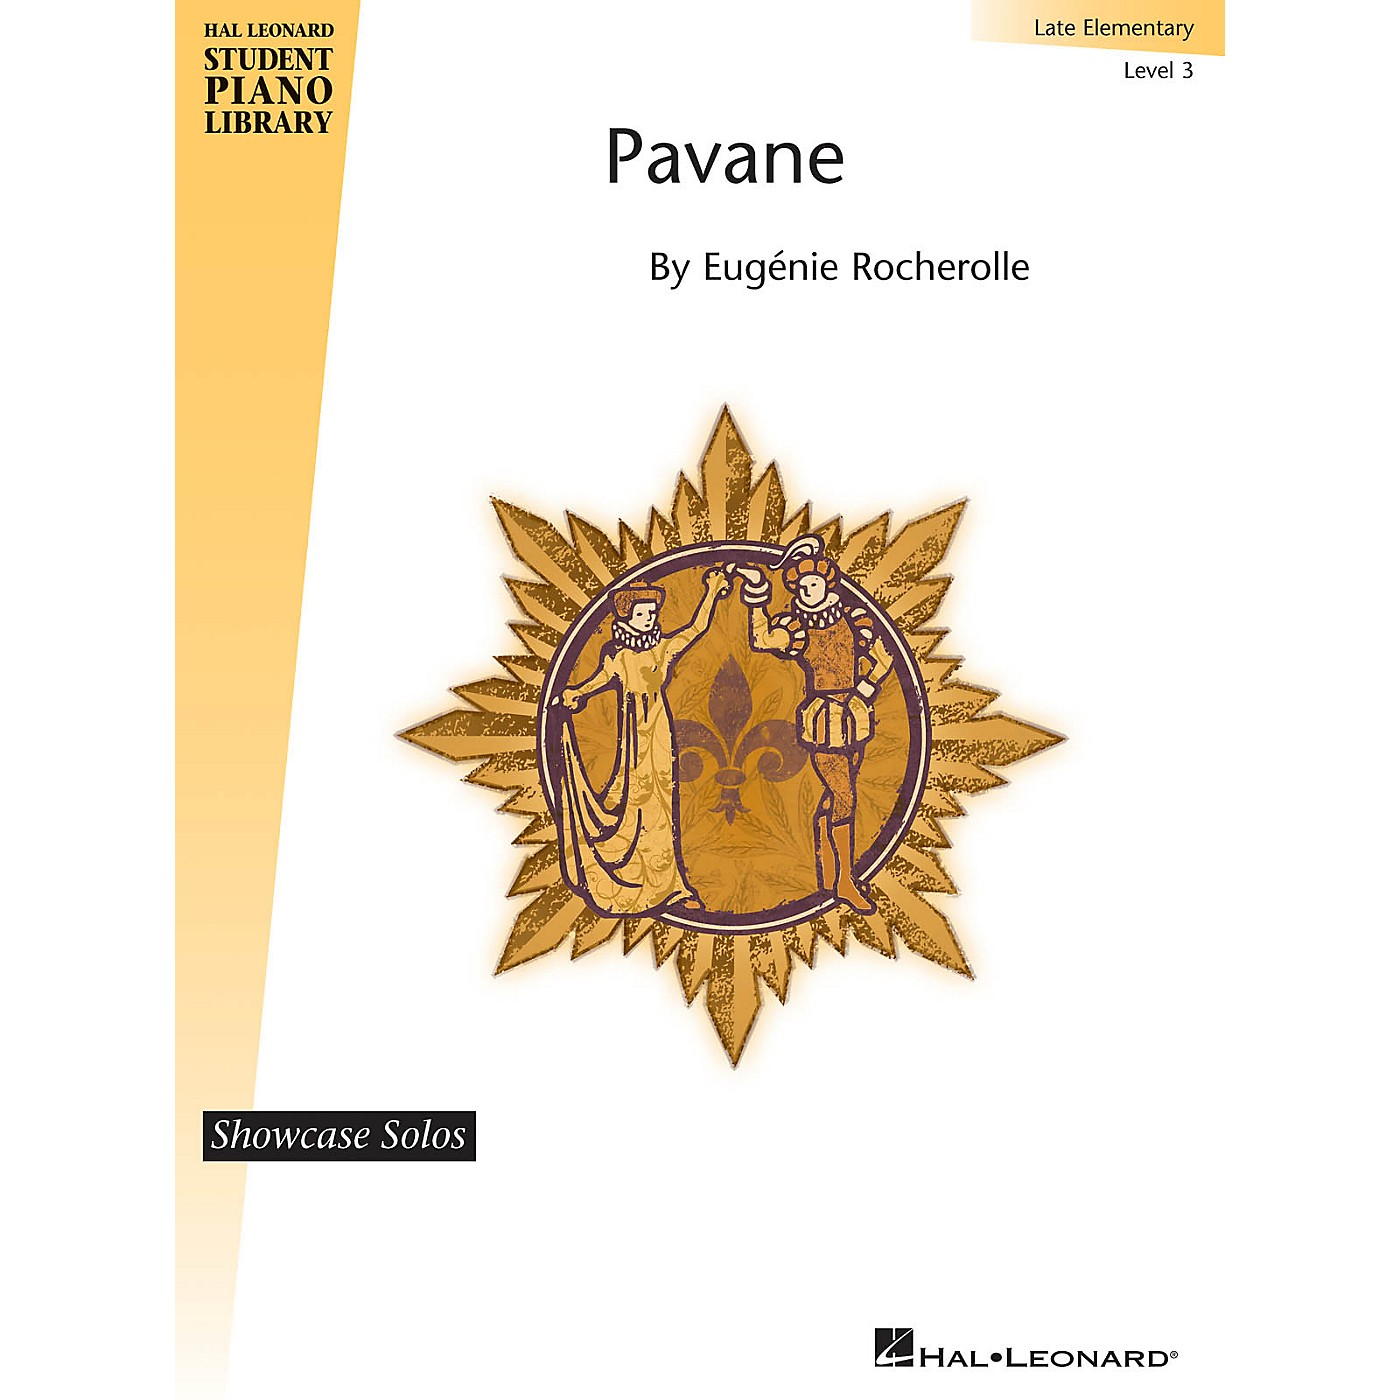 Hal Leonard Pavane Piano Library Series by Eugenie Rocherolle (Level Late Elem) thumbnail